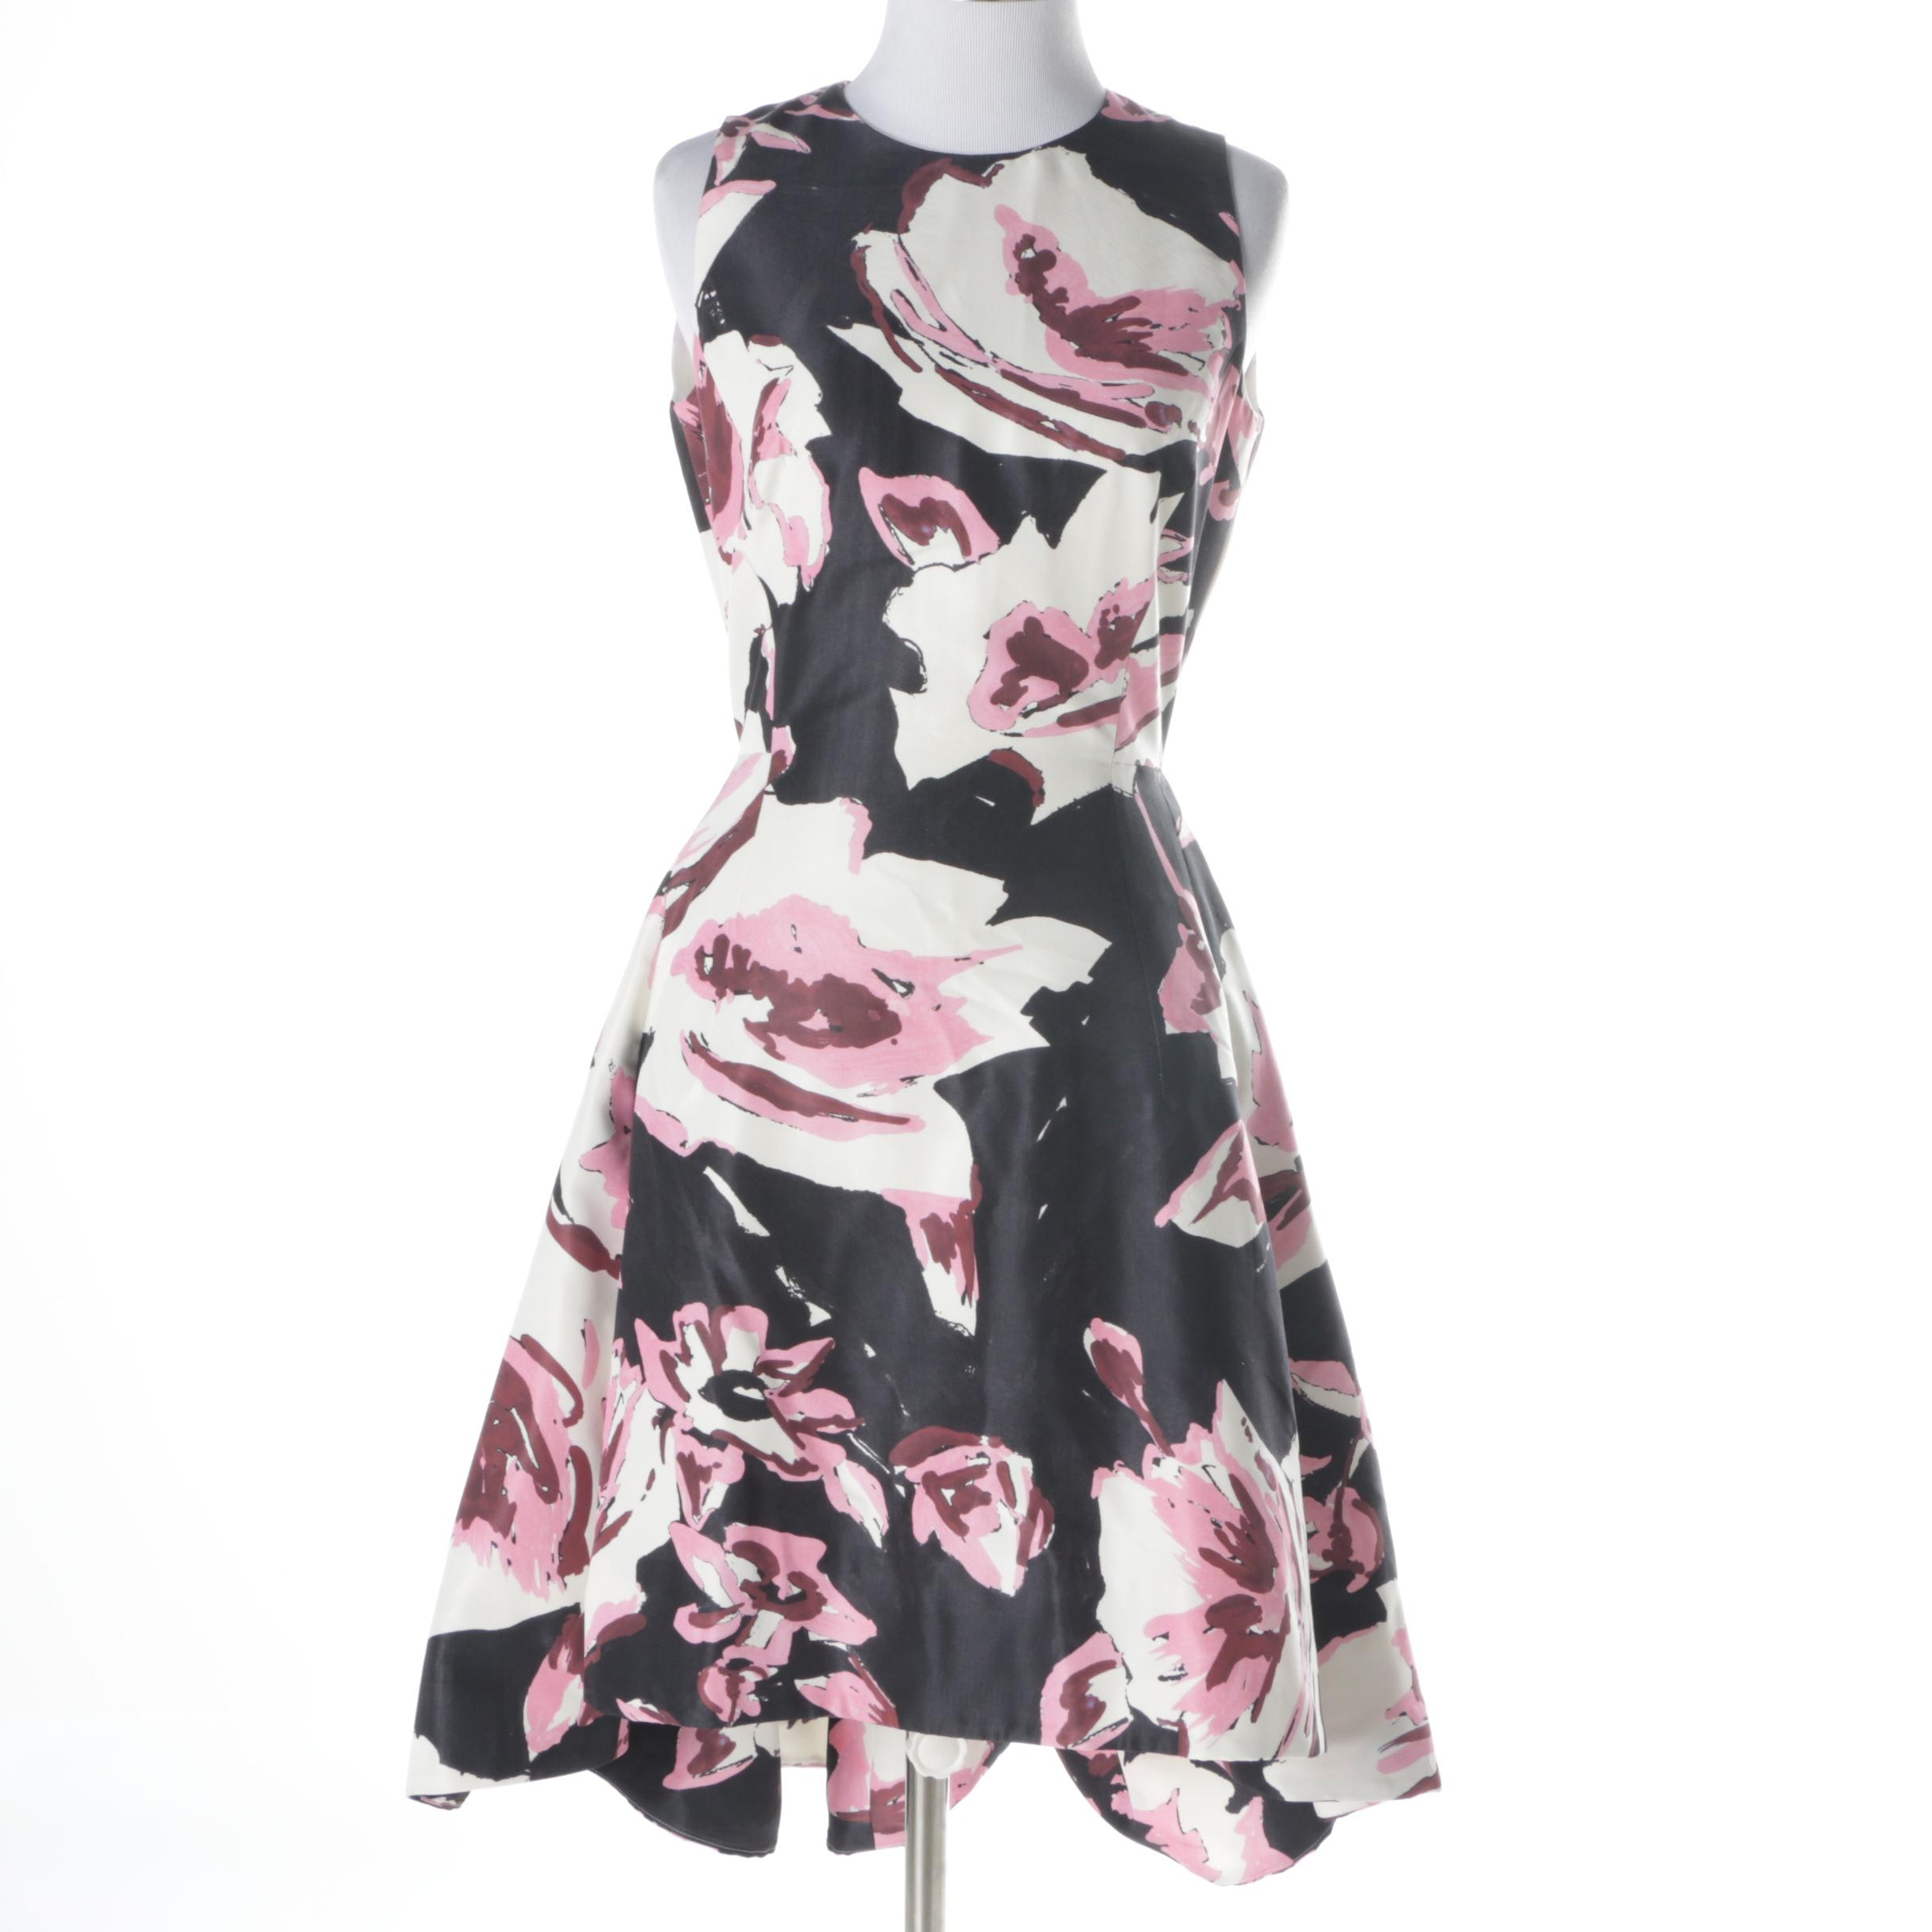 Christian Dior Floral Silk Fit and Flare Dress